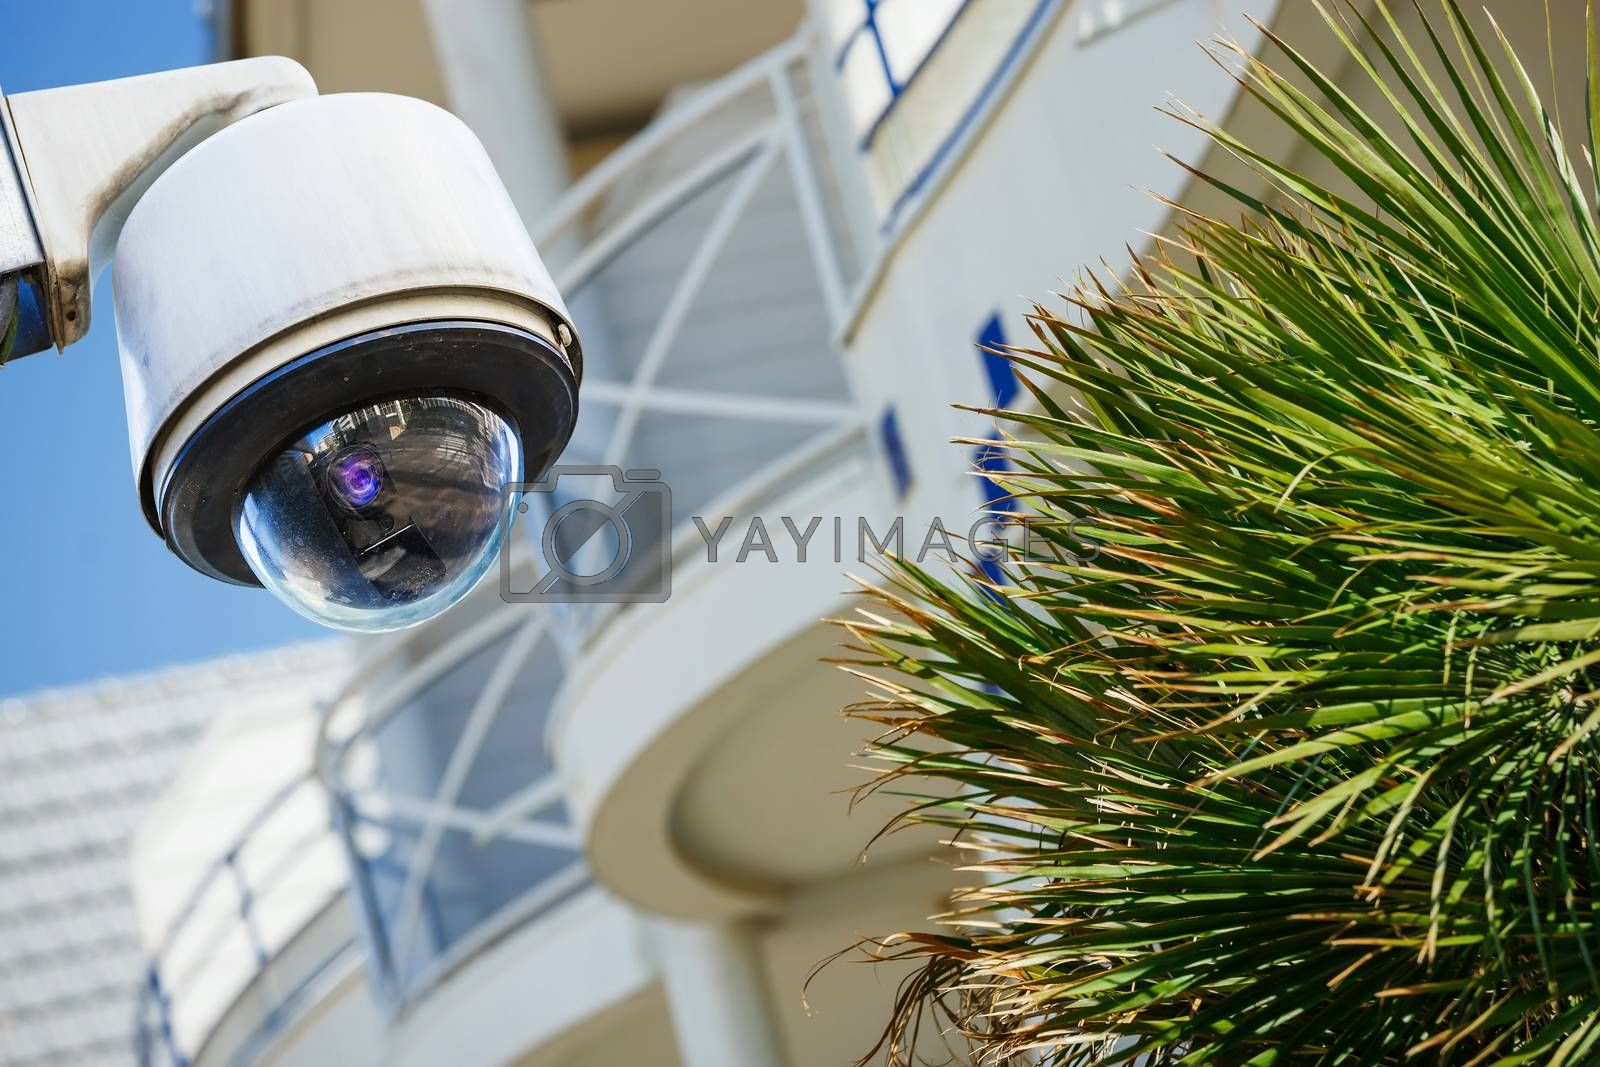 Royalty free image of security CCTV camera or surveillance system with modern luxury residence on blurry background by pixinoo